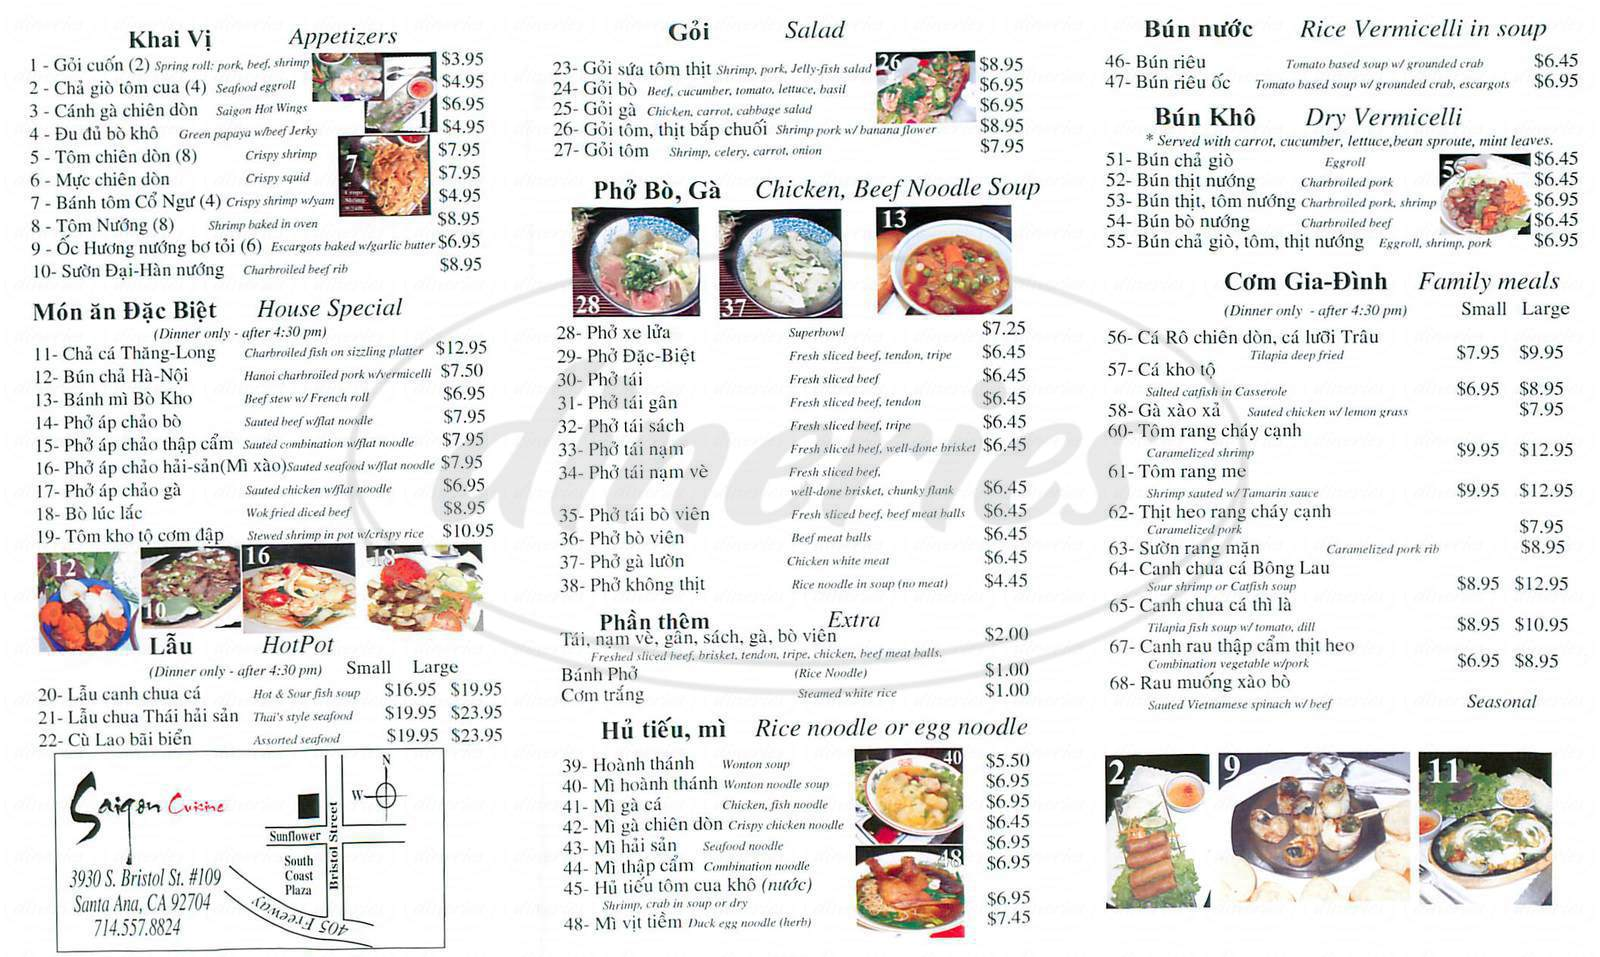 menu for Saigon Cuisine